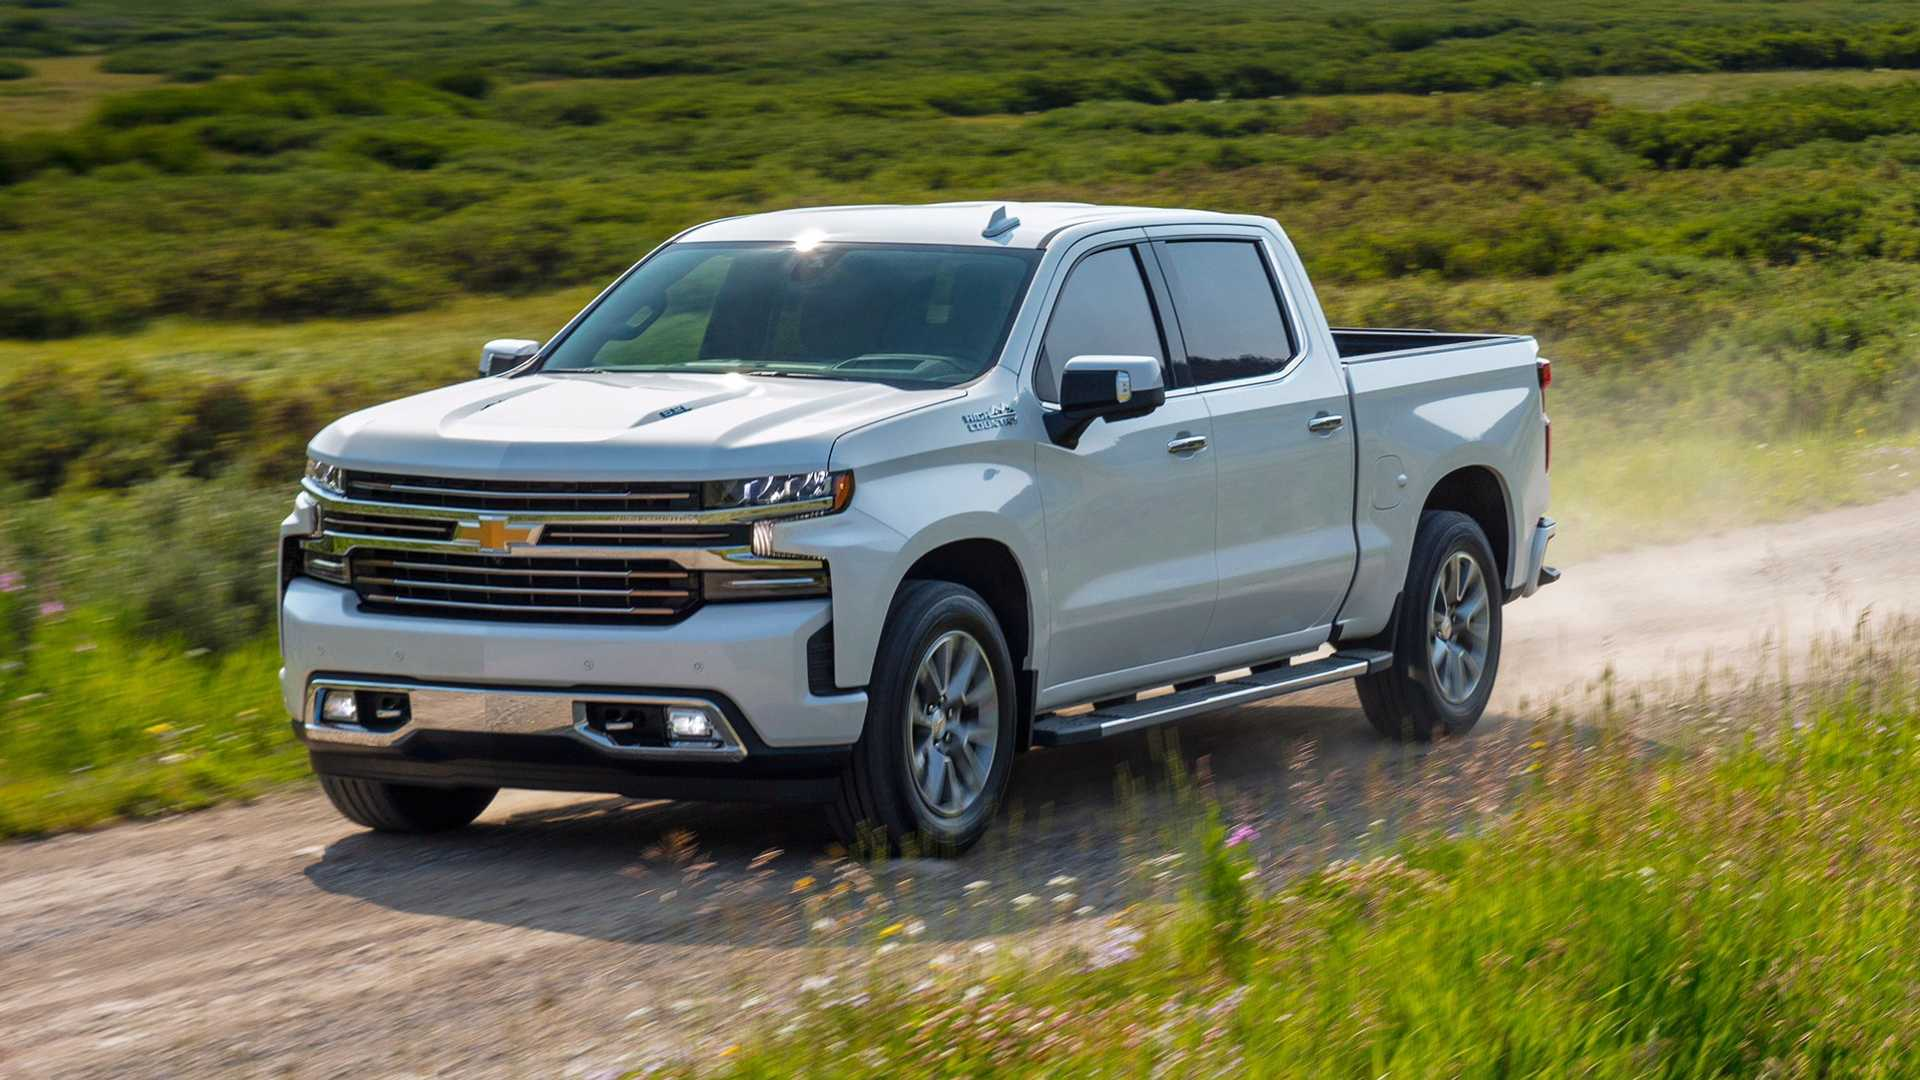 Silverado High Desert >> Trademark Filing Hints At Silverado High Desert Edition Pickup